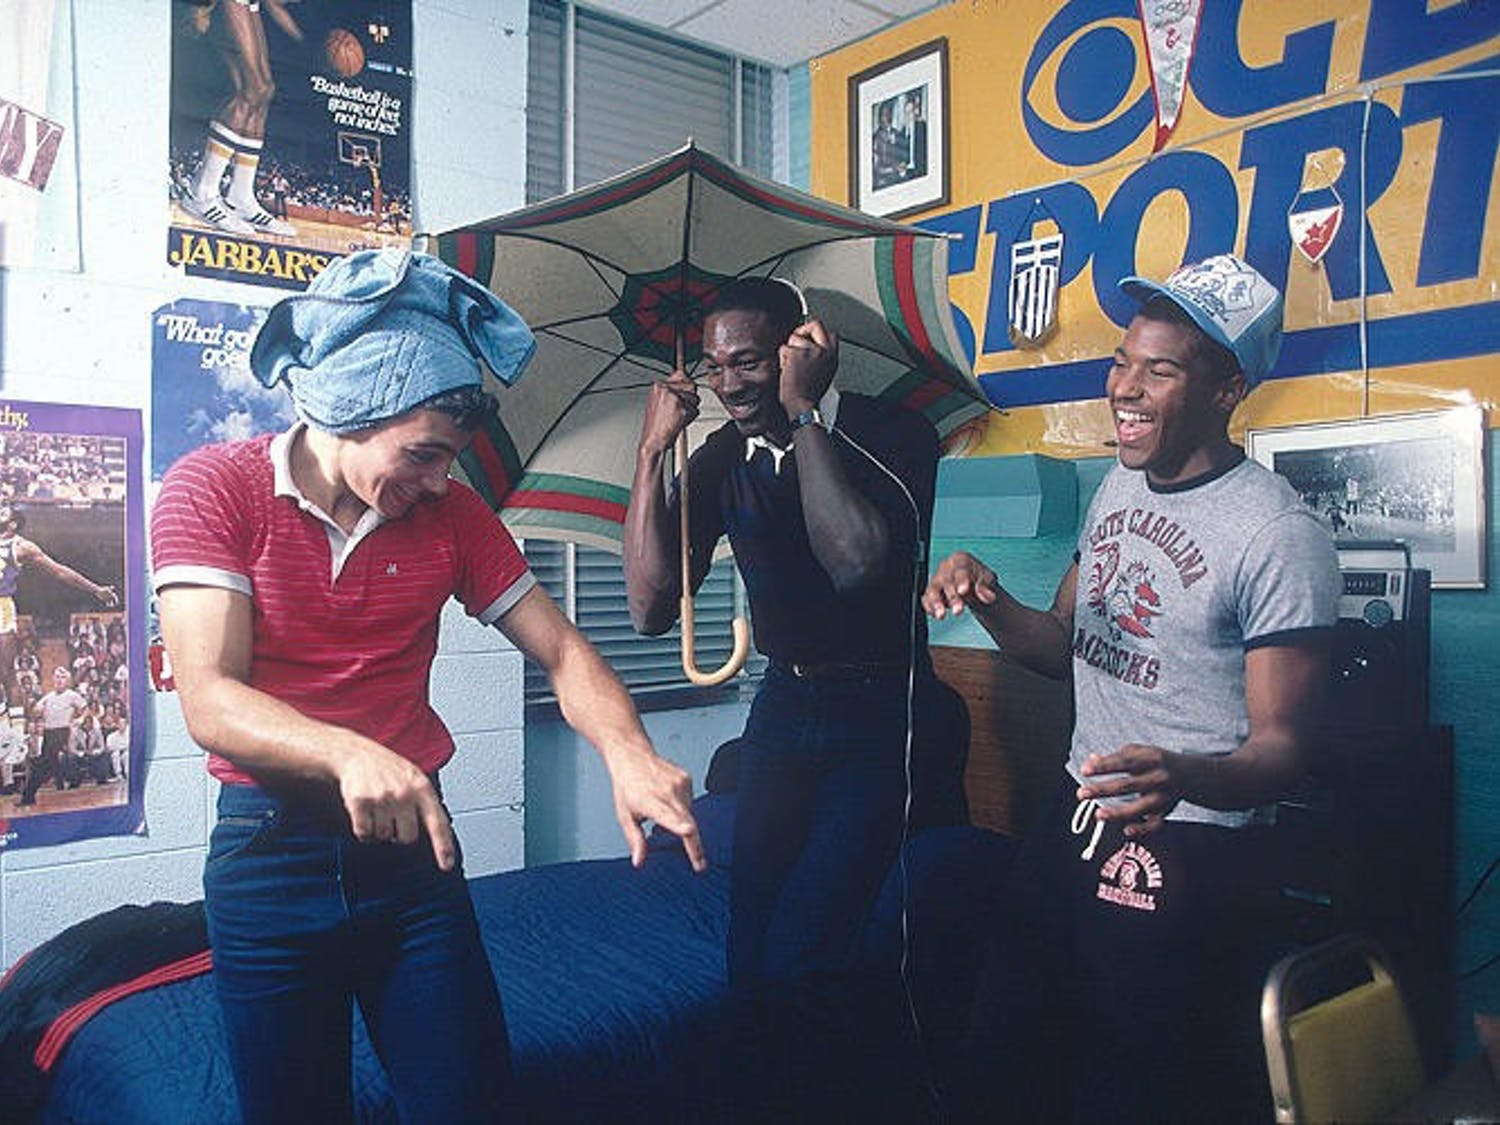 UNC junior Michael Jordan (middle) and two friends laugh together in Jordan's dorm room in Granville Towers in 1983. Photo courtesy of Lane Stewart.